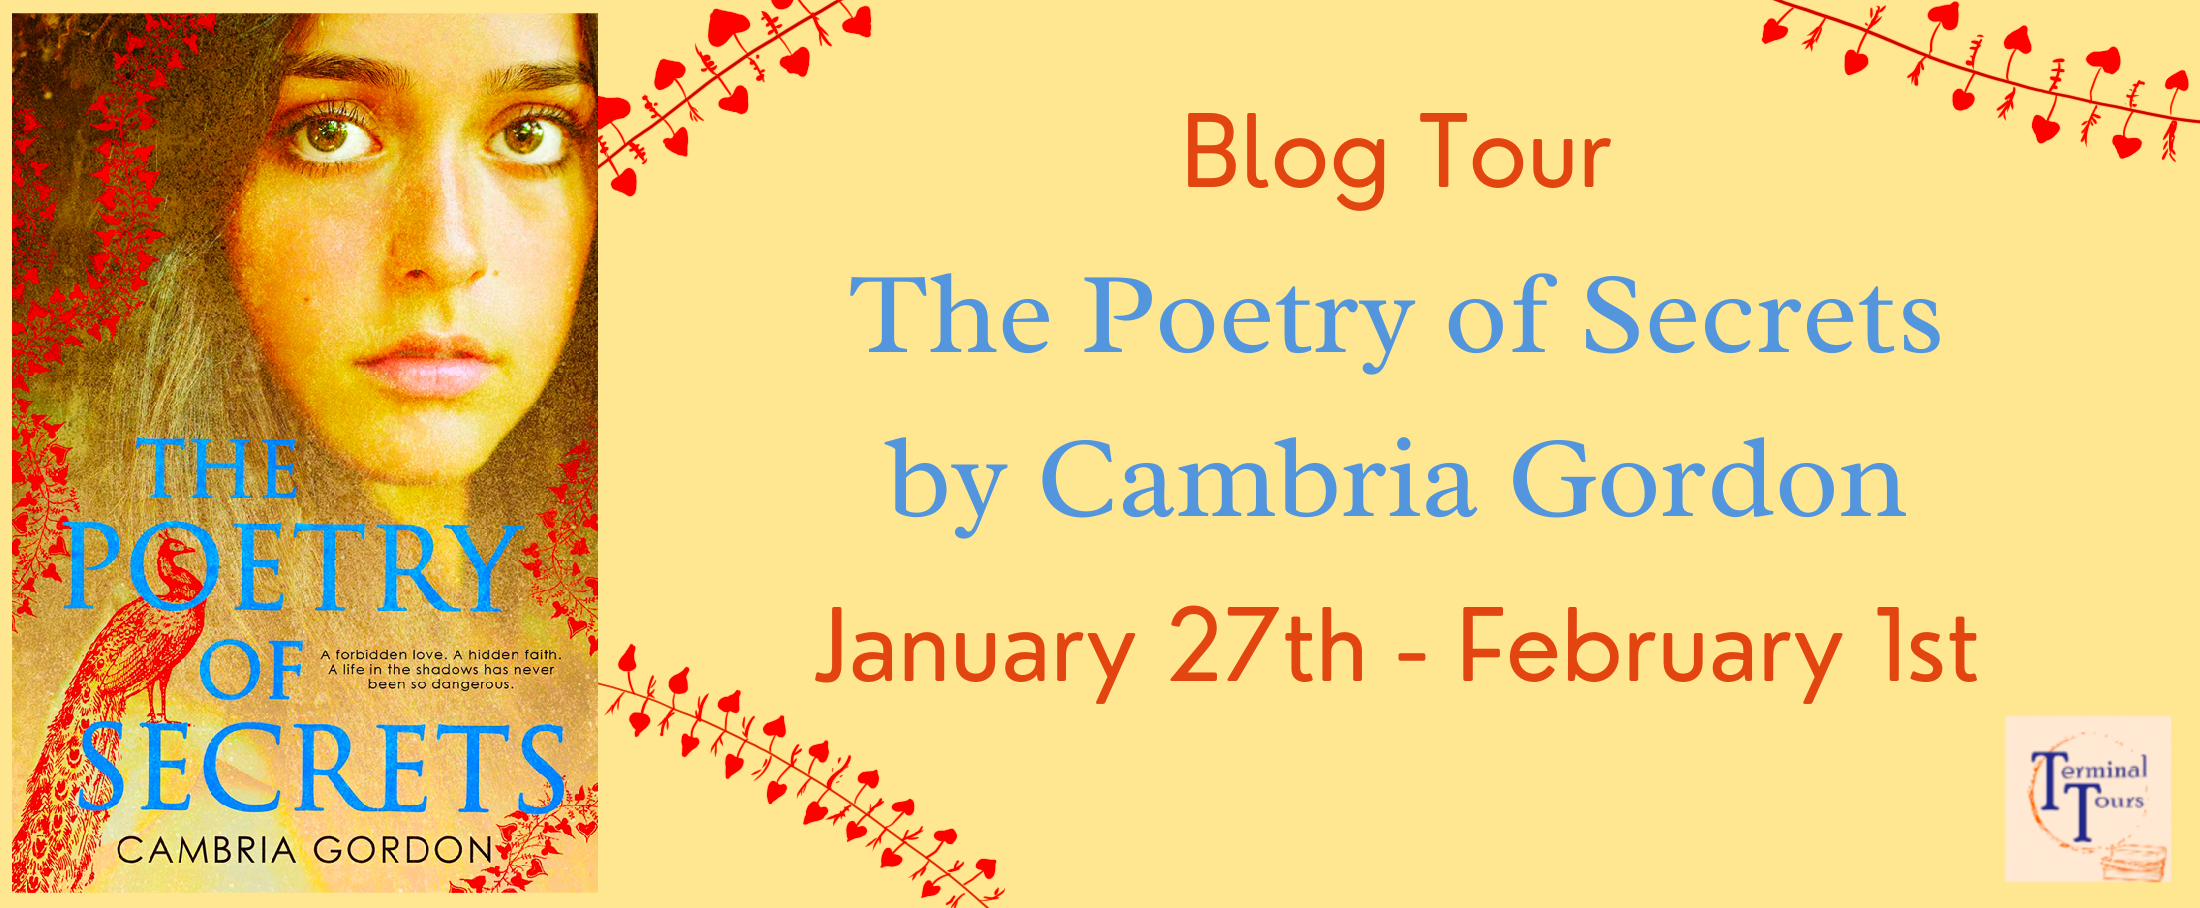 Blog Tour: The Poetry of Secrets by Cambria Gordon (Creative Post + Bookstagram!)